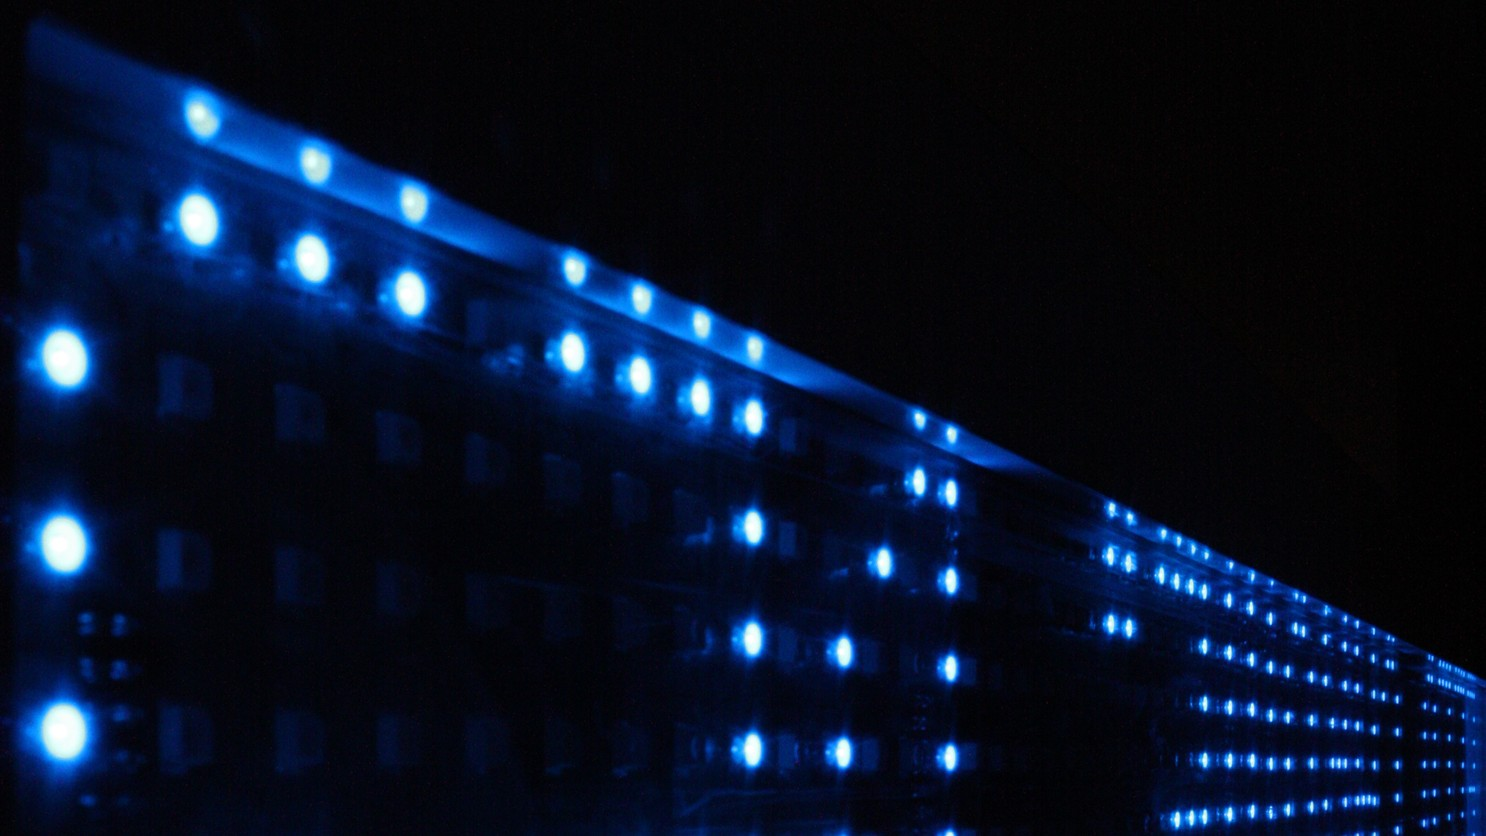 Researchers Set New Record for Data Transmission Using LED ...